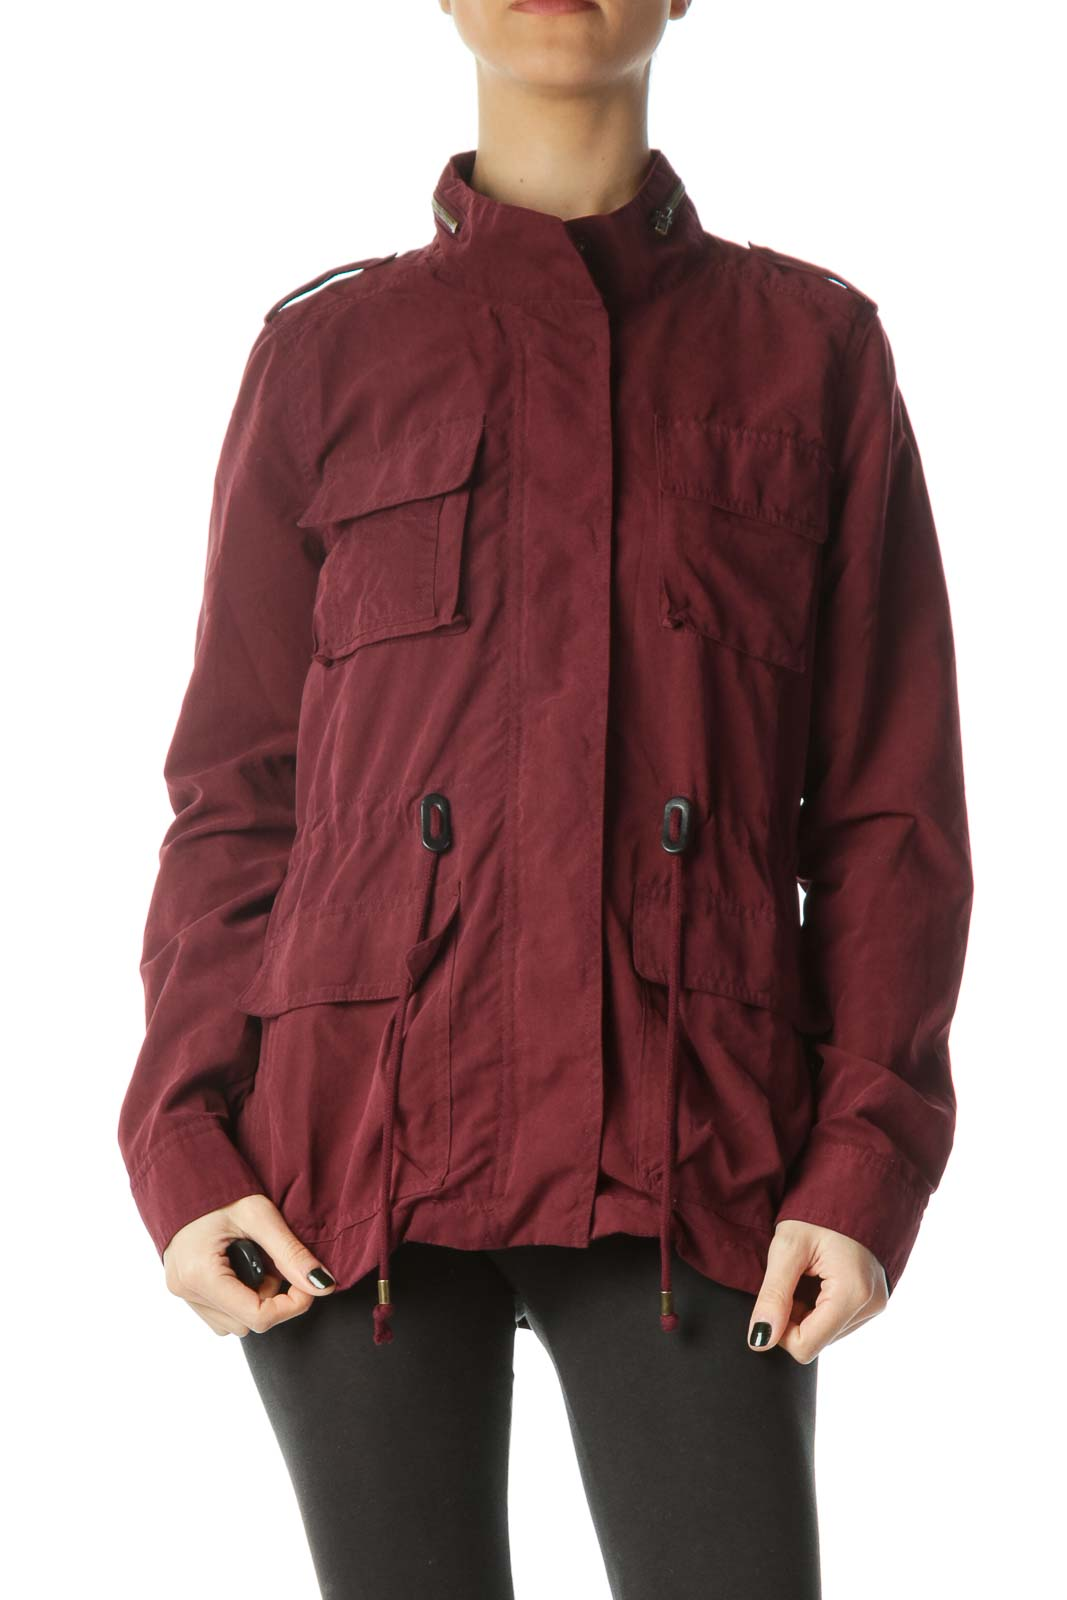 Burgundy Pocketed Zippered Light Jacket